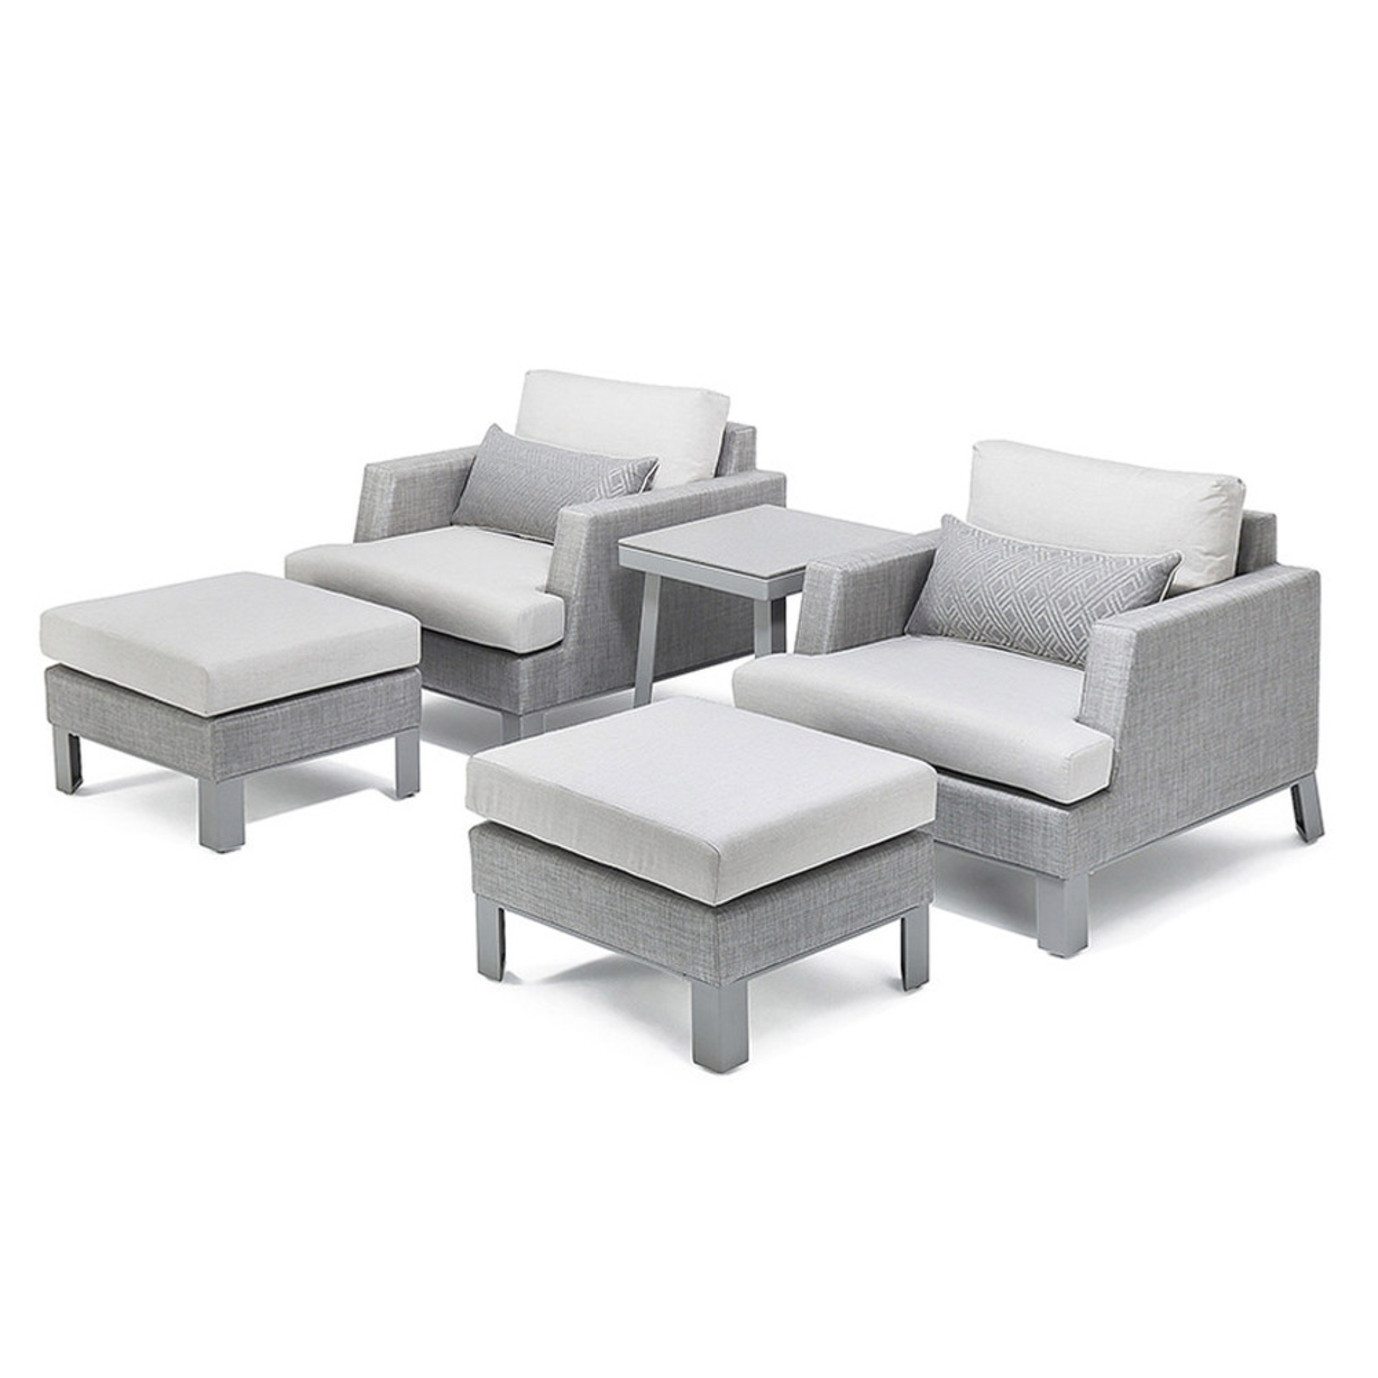 Portofino® Sling 5 Piece Club Chair Set